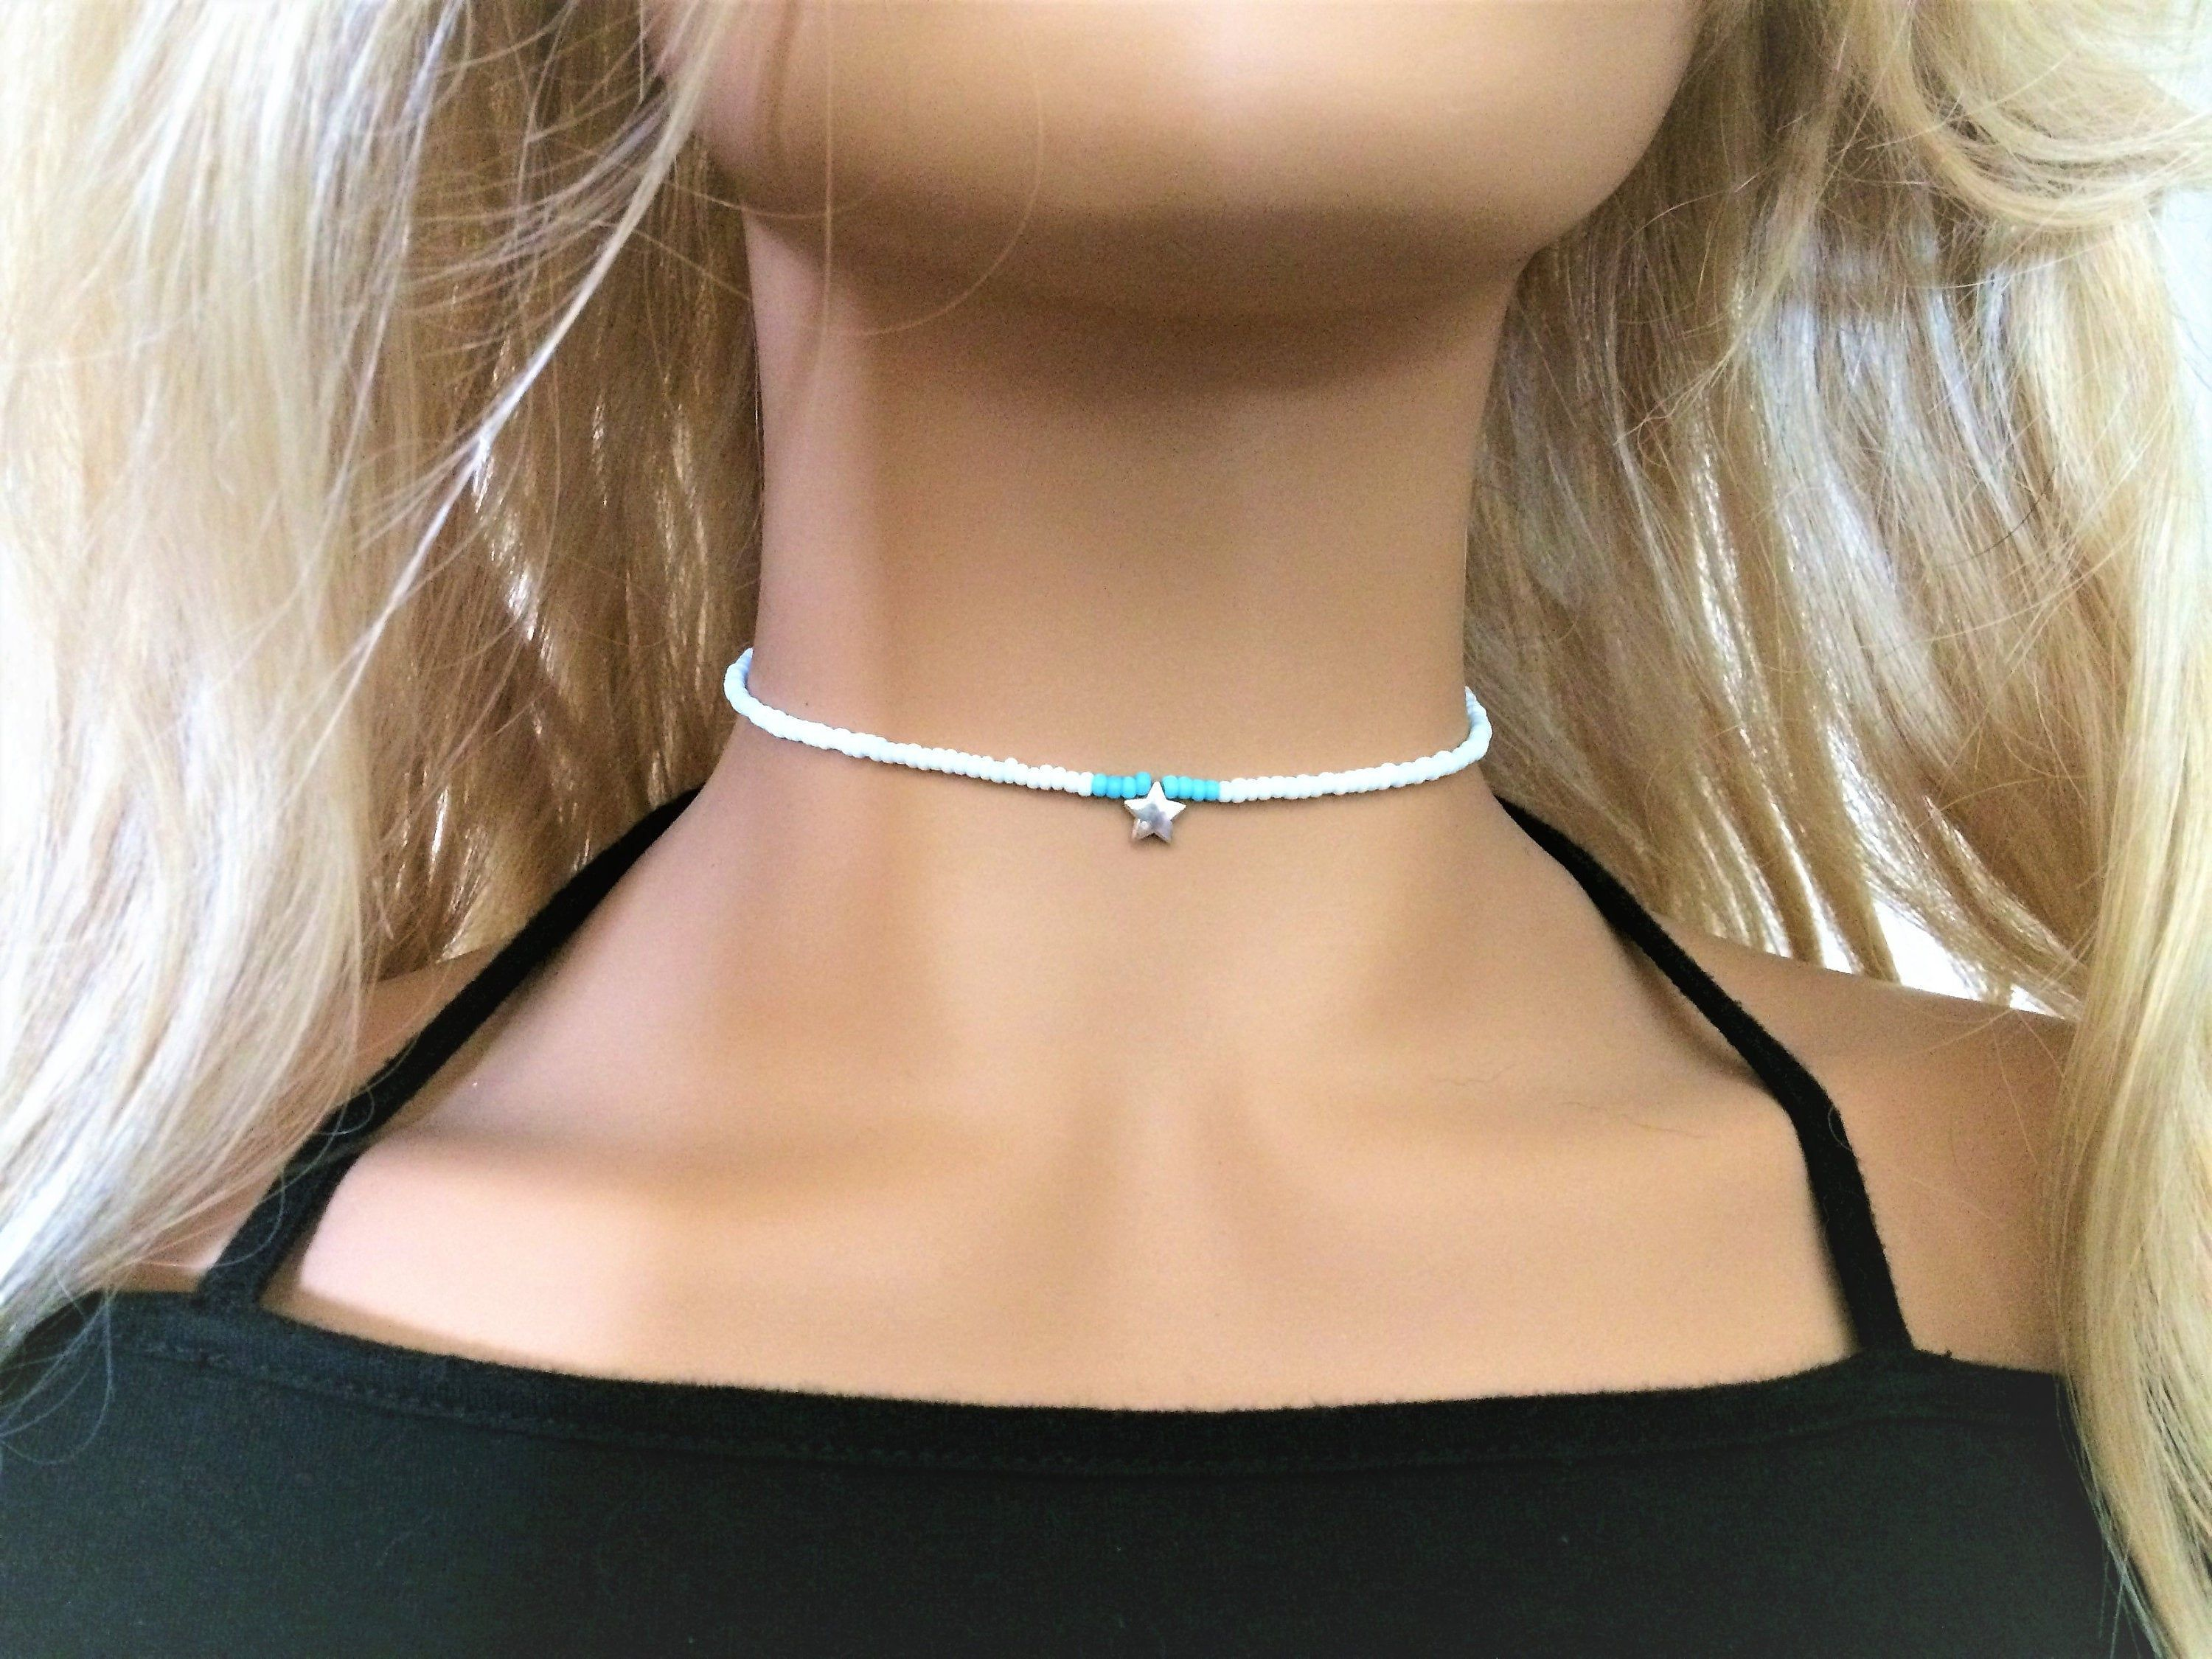 White Beaded Choker Necklace with Star Charm Turquoise Blue   Etsy   Trendy  chokers, Beaded choker necklace, Beaded choker